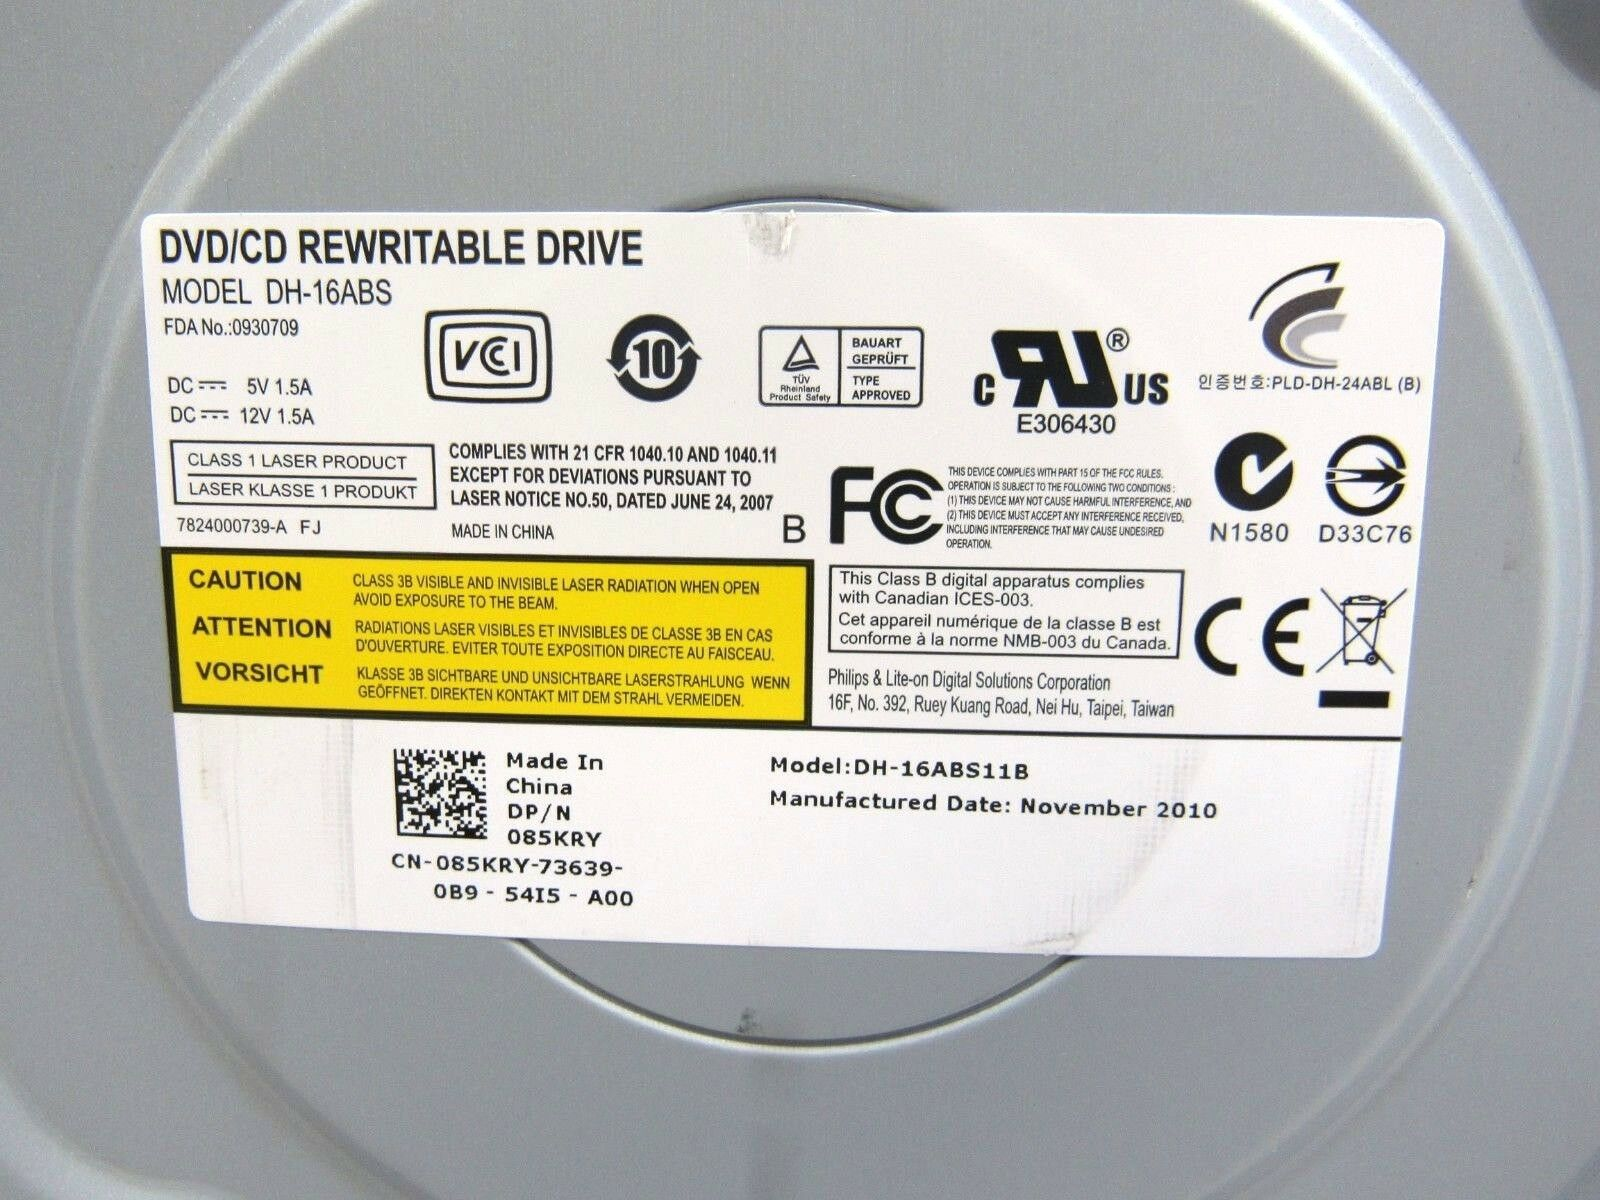 PLDS DVD RW DH-16ABS DRIVER UPDATE